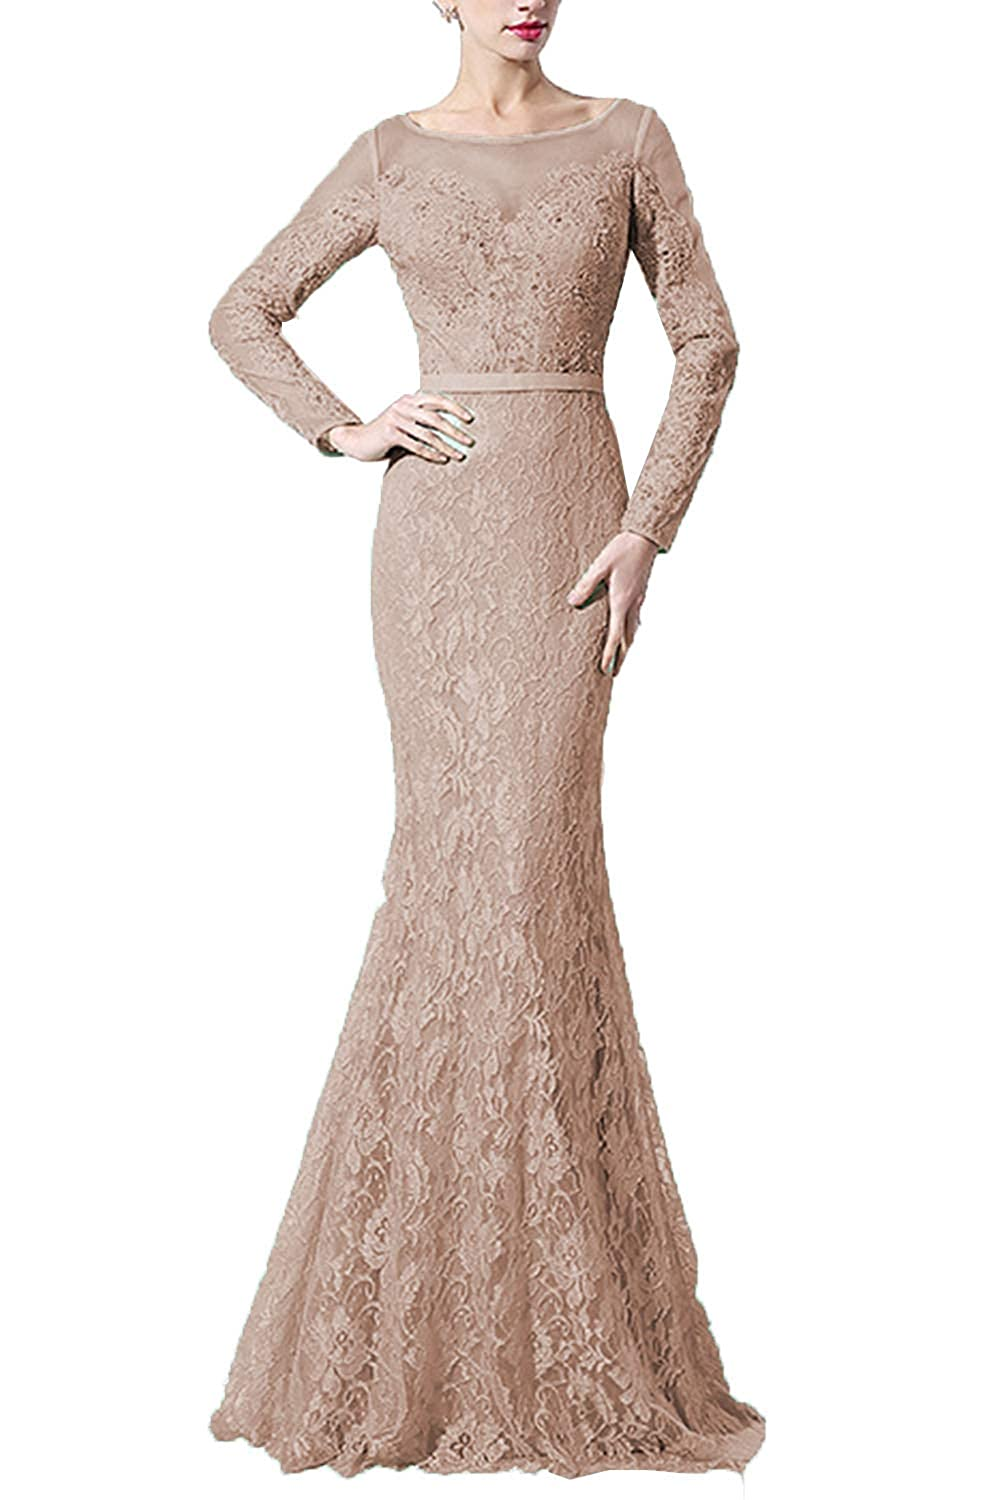 Champagne SDRESS Women's Lace Mermaid Evening Dress with Sleeves Crystal Beaded Formal Dress Long